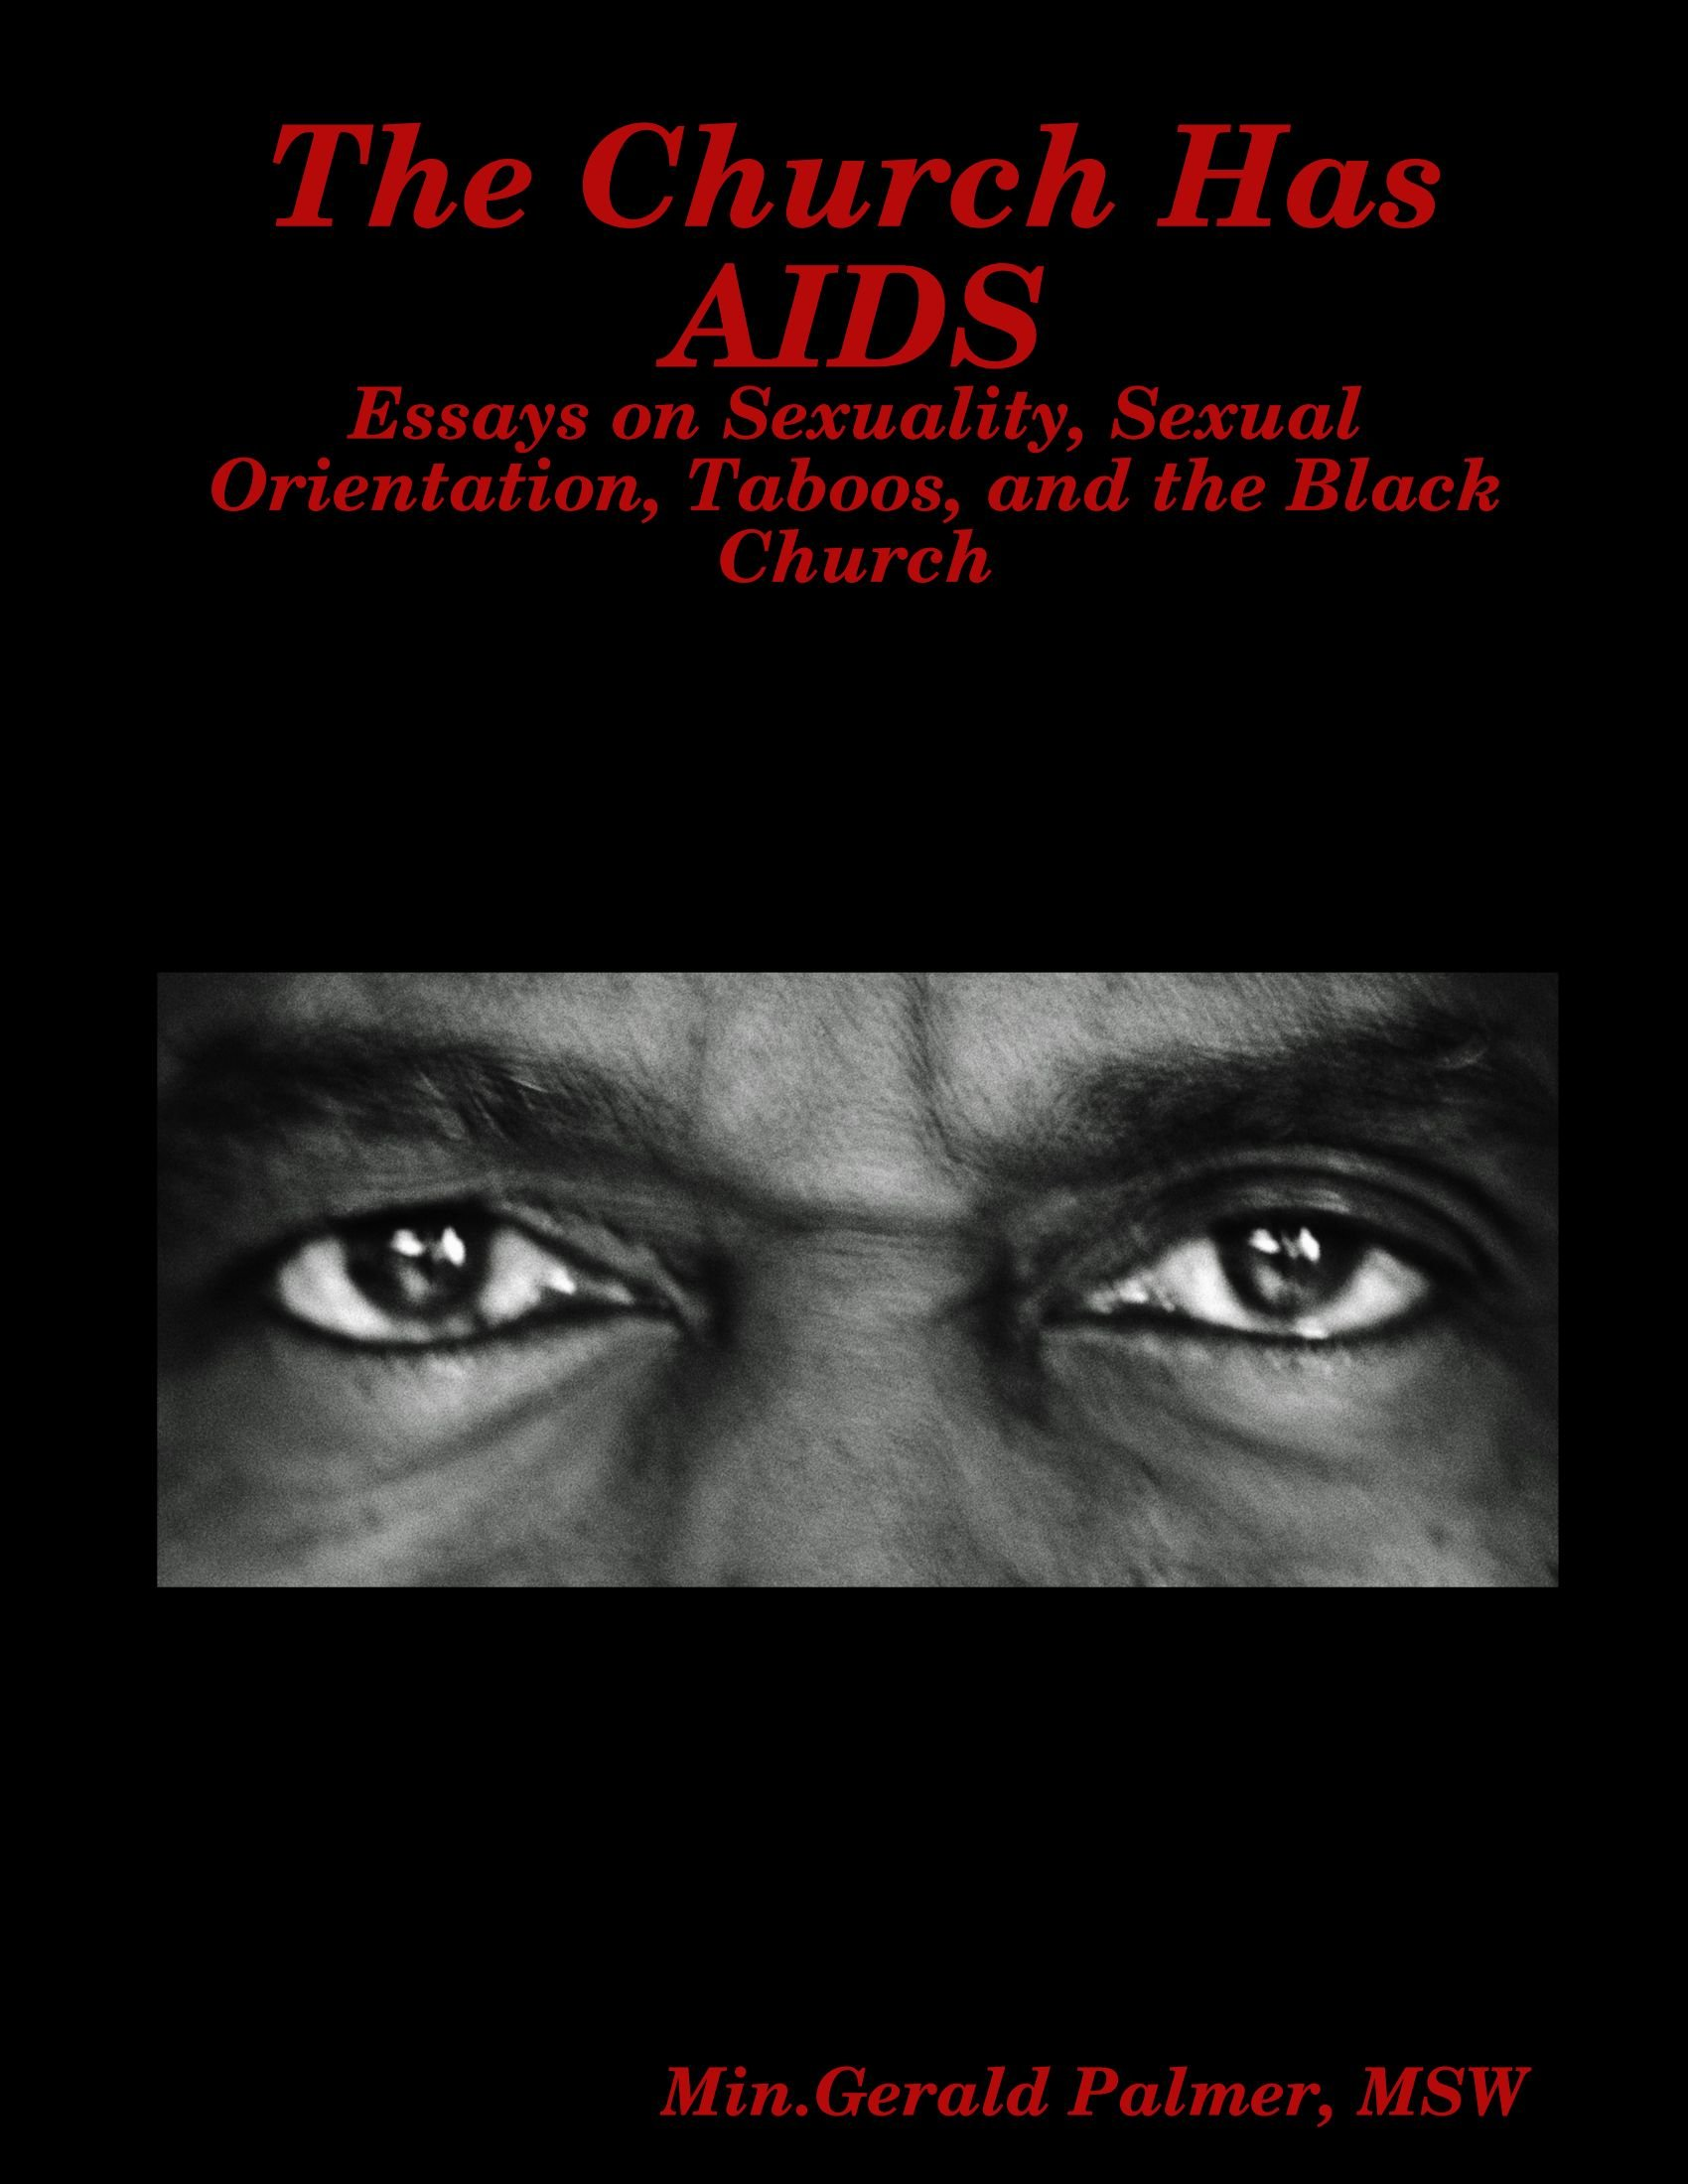 the church has aids essays on sexuality sexual orientation  the church has aids essays on sexuality sexual orientation taboos and the black church gerald palmer 9780557124640 com books